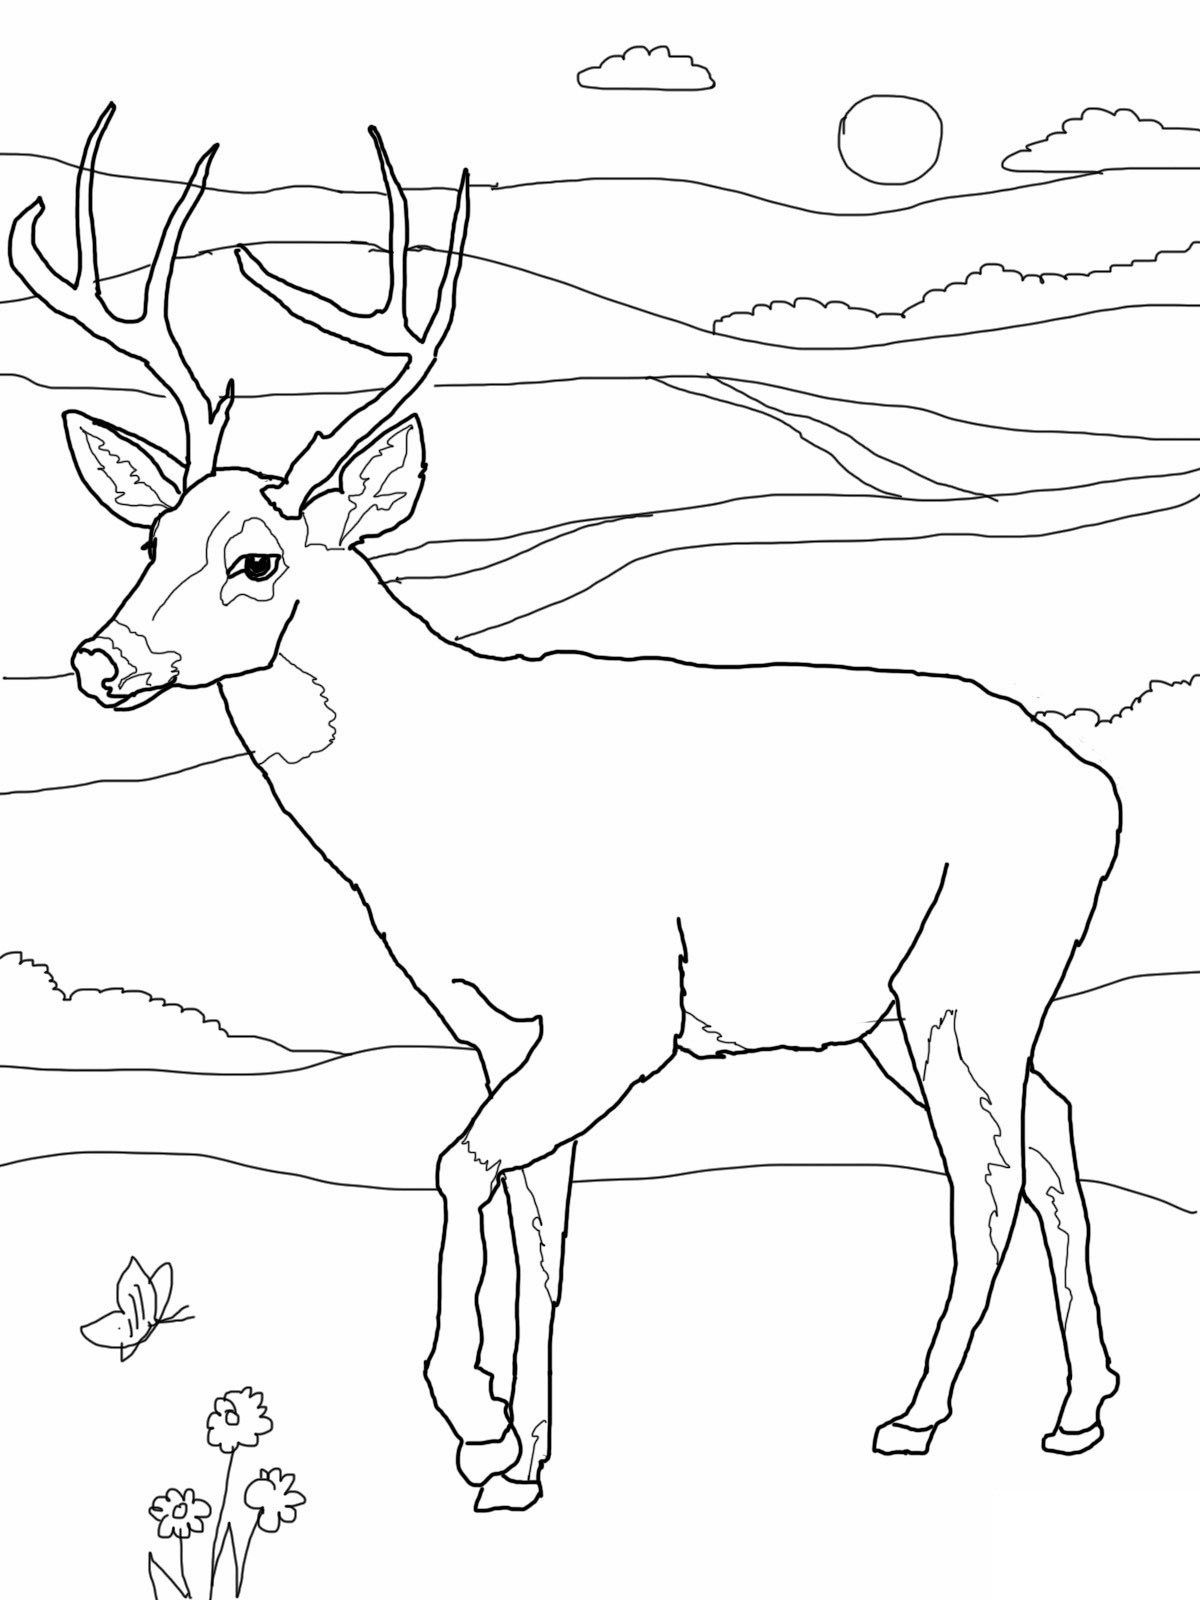 deer coloring page for education new animal deer coloring pages deer page coloring